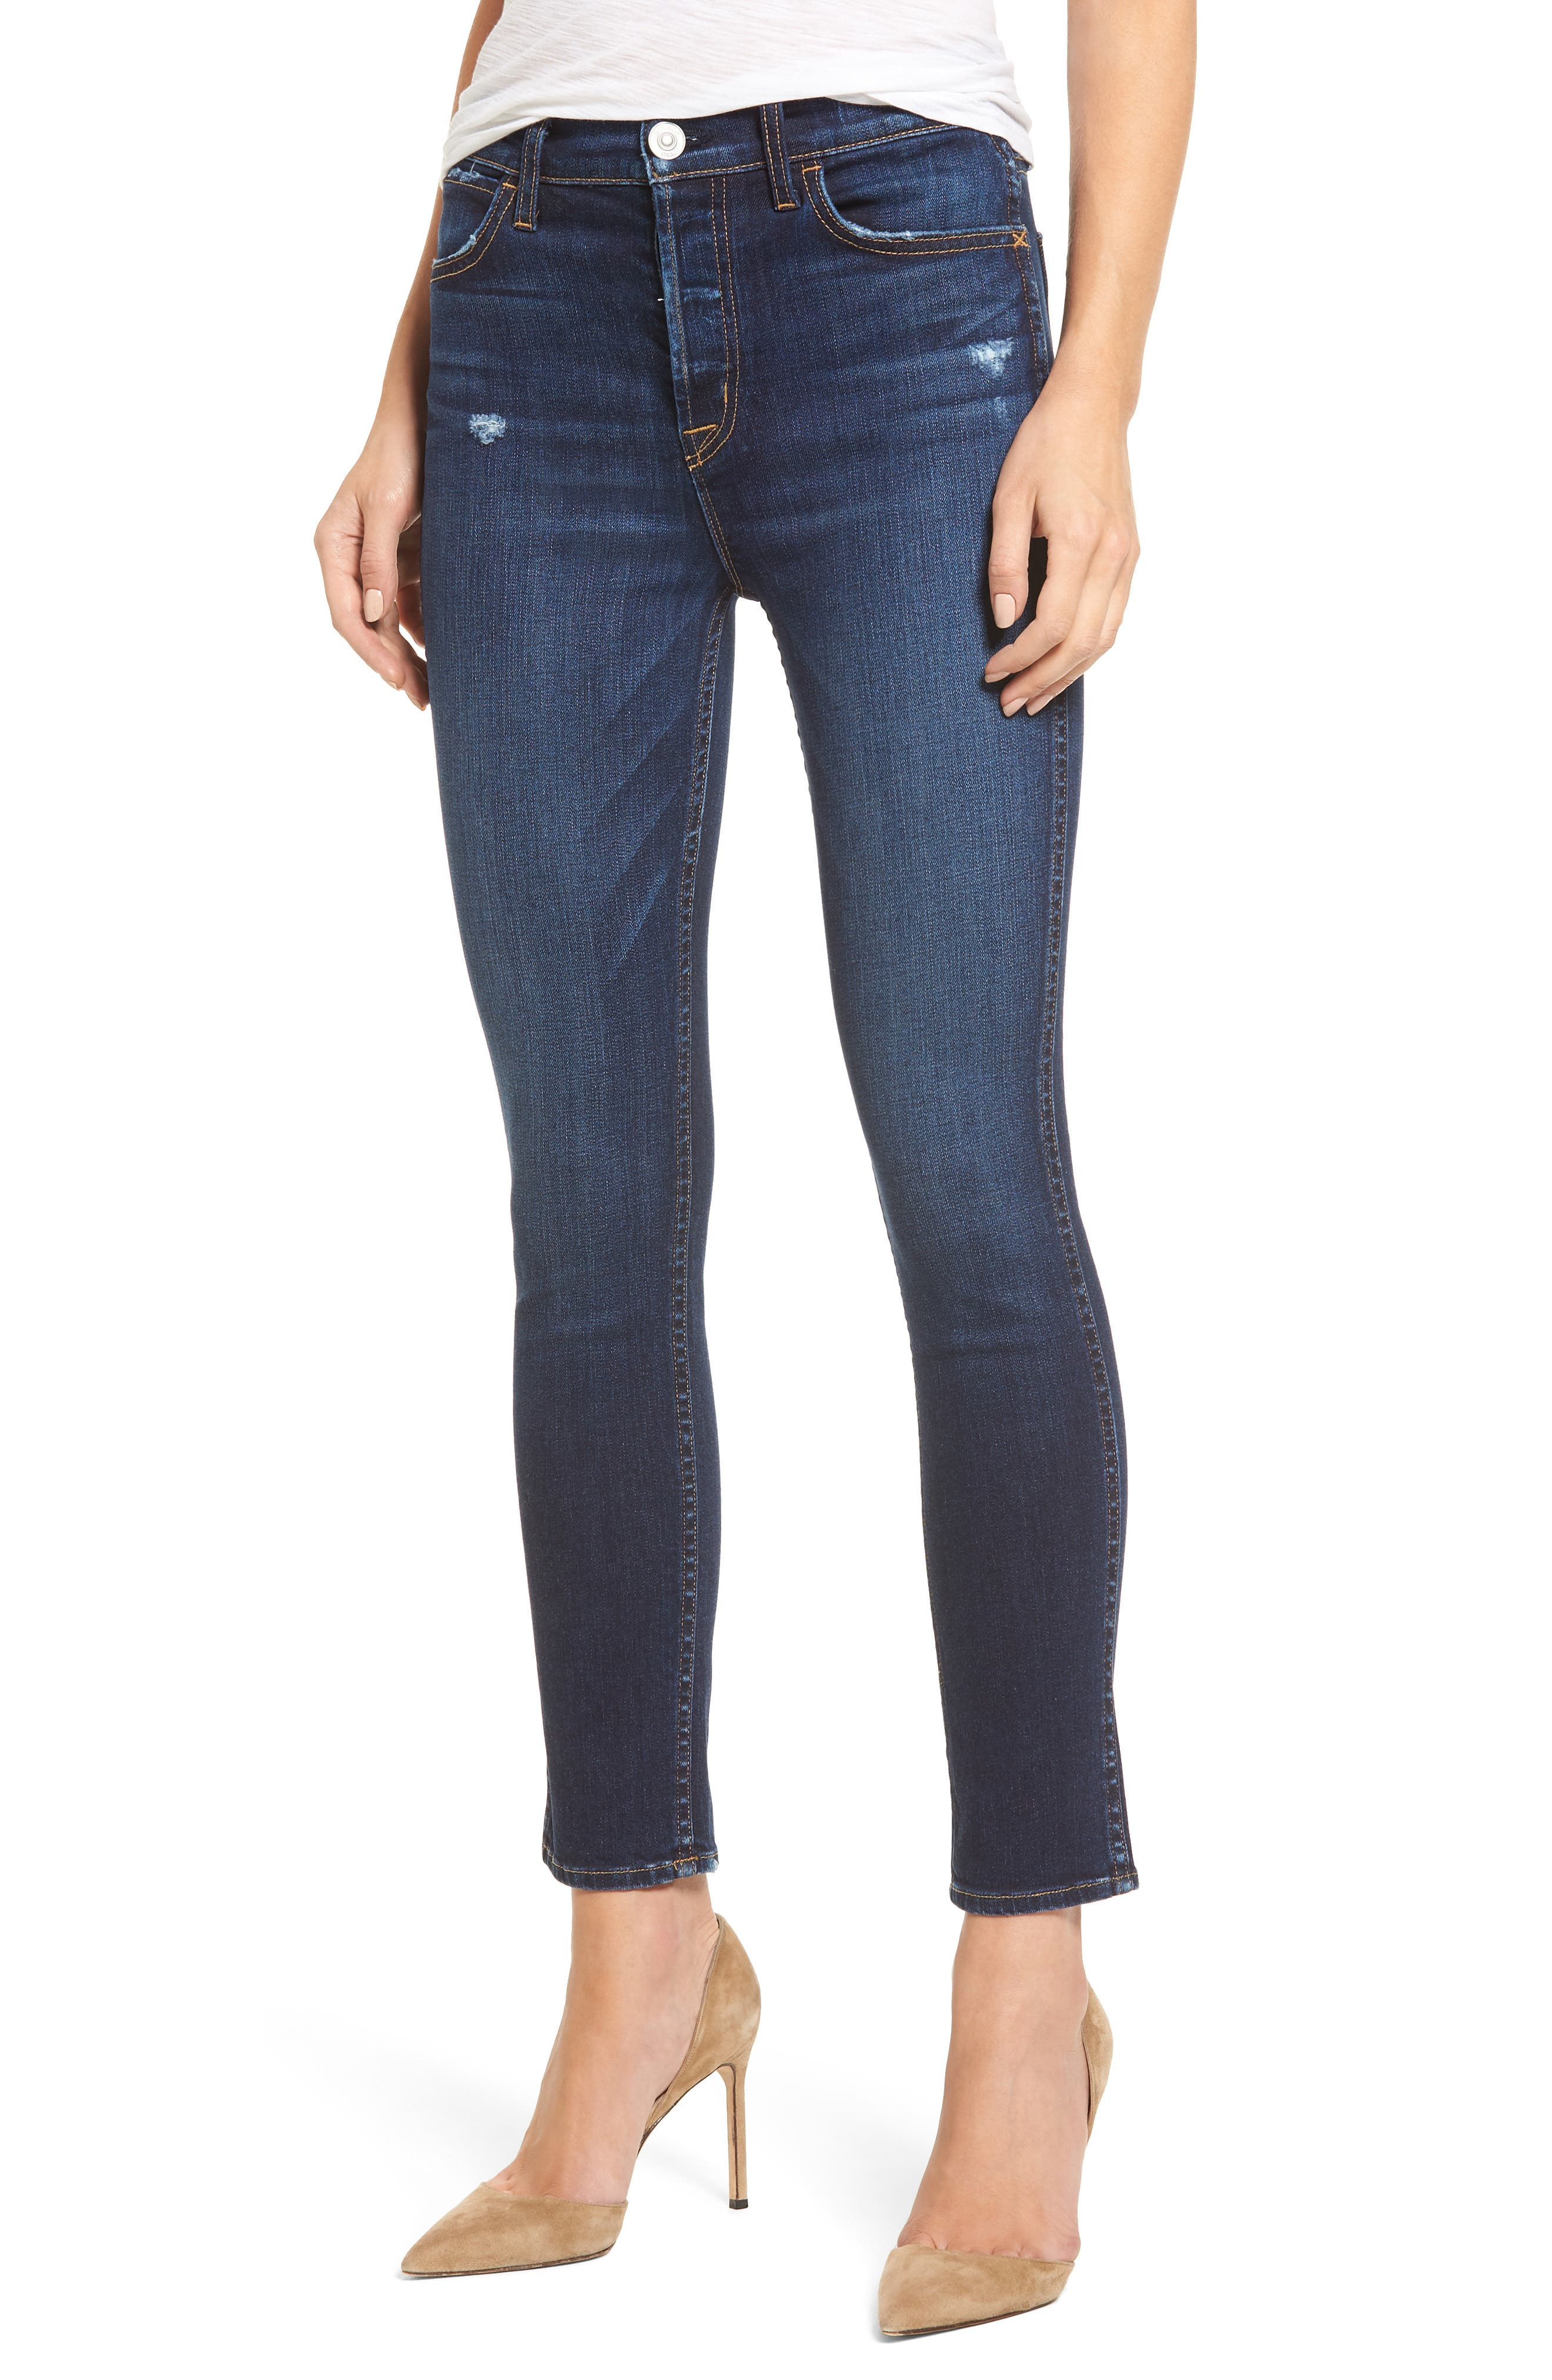 Holly High Waist Ankle Skinny Jeans,                         Main,                         color, Corrupt